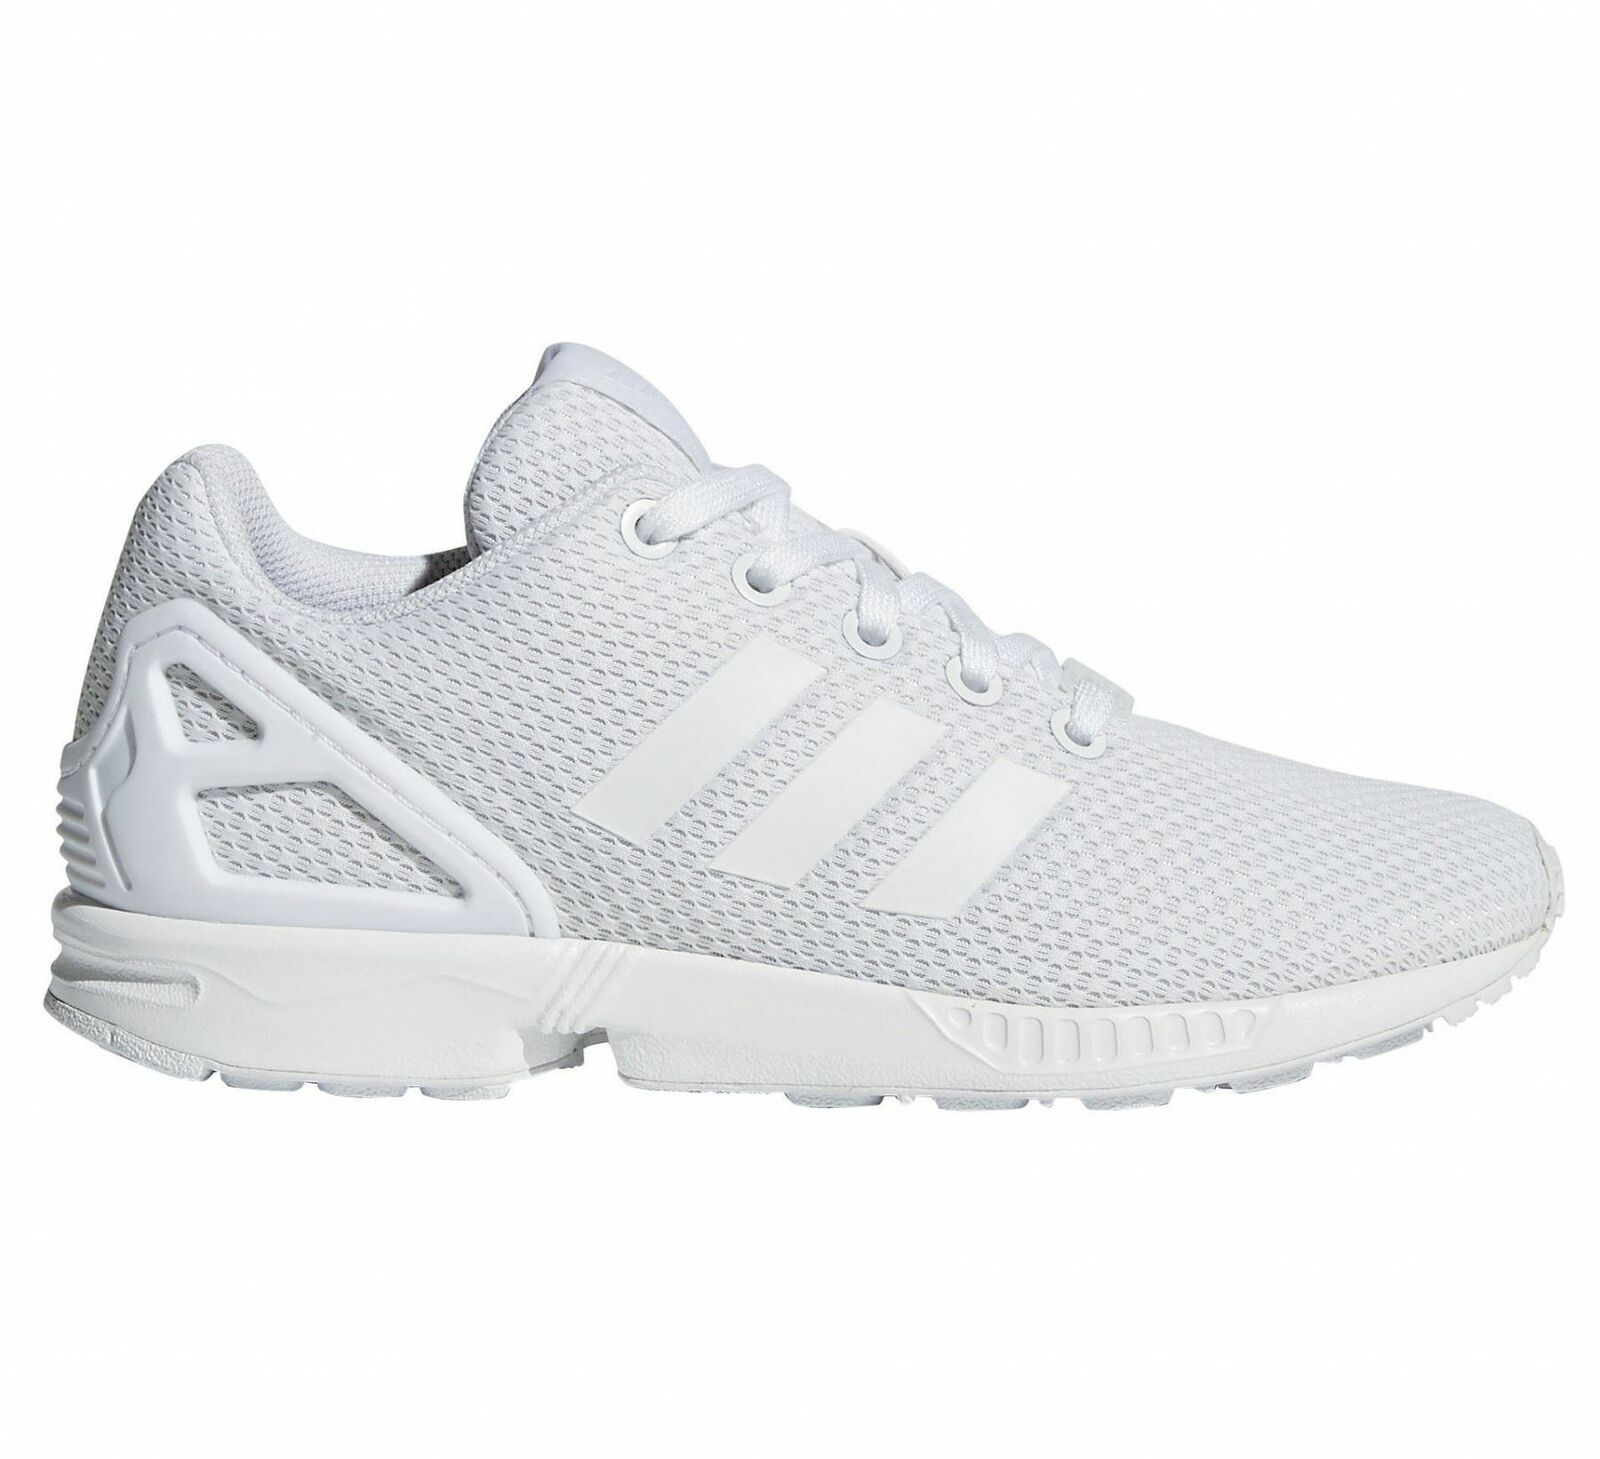 promo code a7788 27e4f adidas ZX Flux S81421 Juniors Womens Trainers~Originals~UK 3.5 to 5.5~SAVE  £££'S